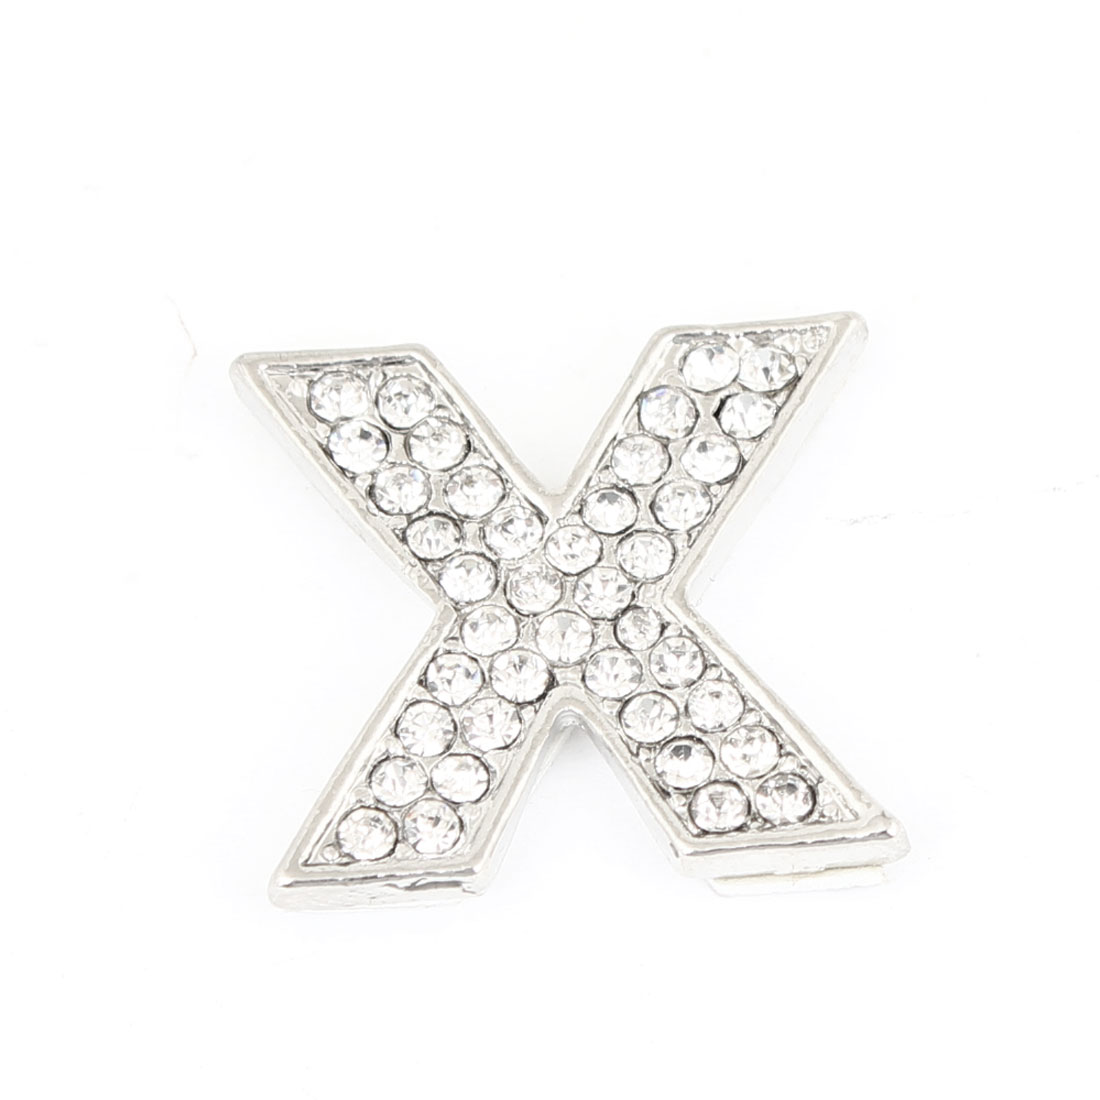 Car Truck Rhinestones Inlaid Silver Tone Letter X Shaped 3D Sticker Decoration